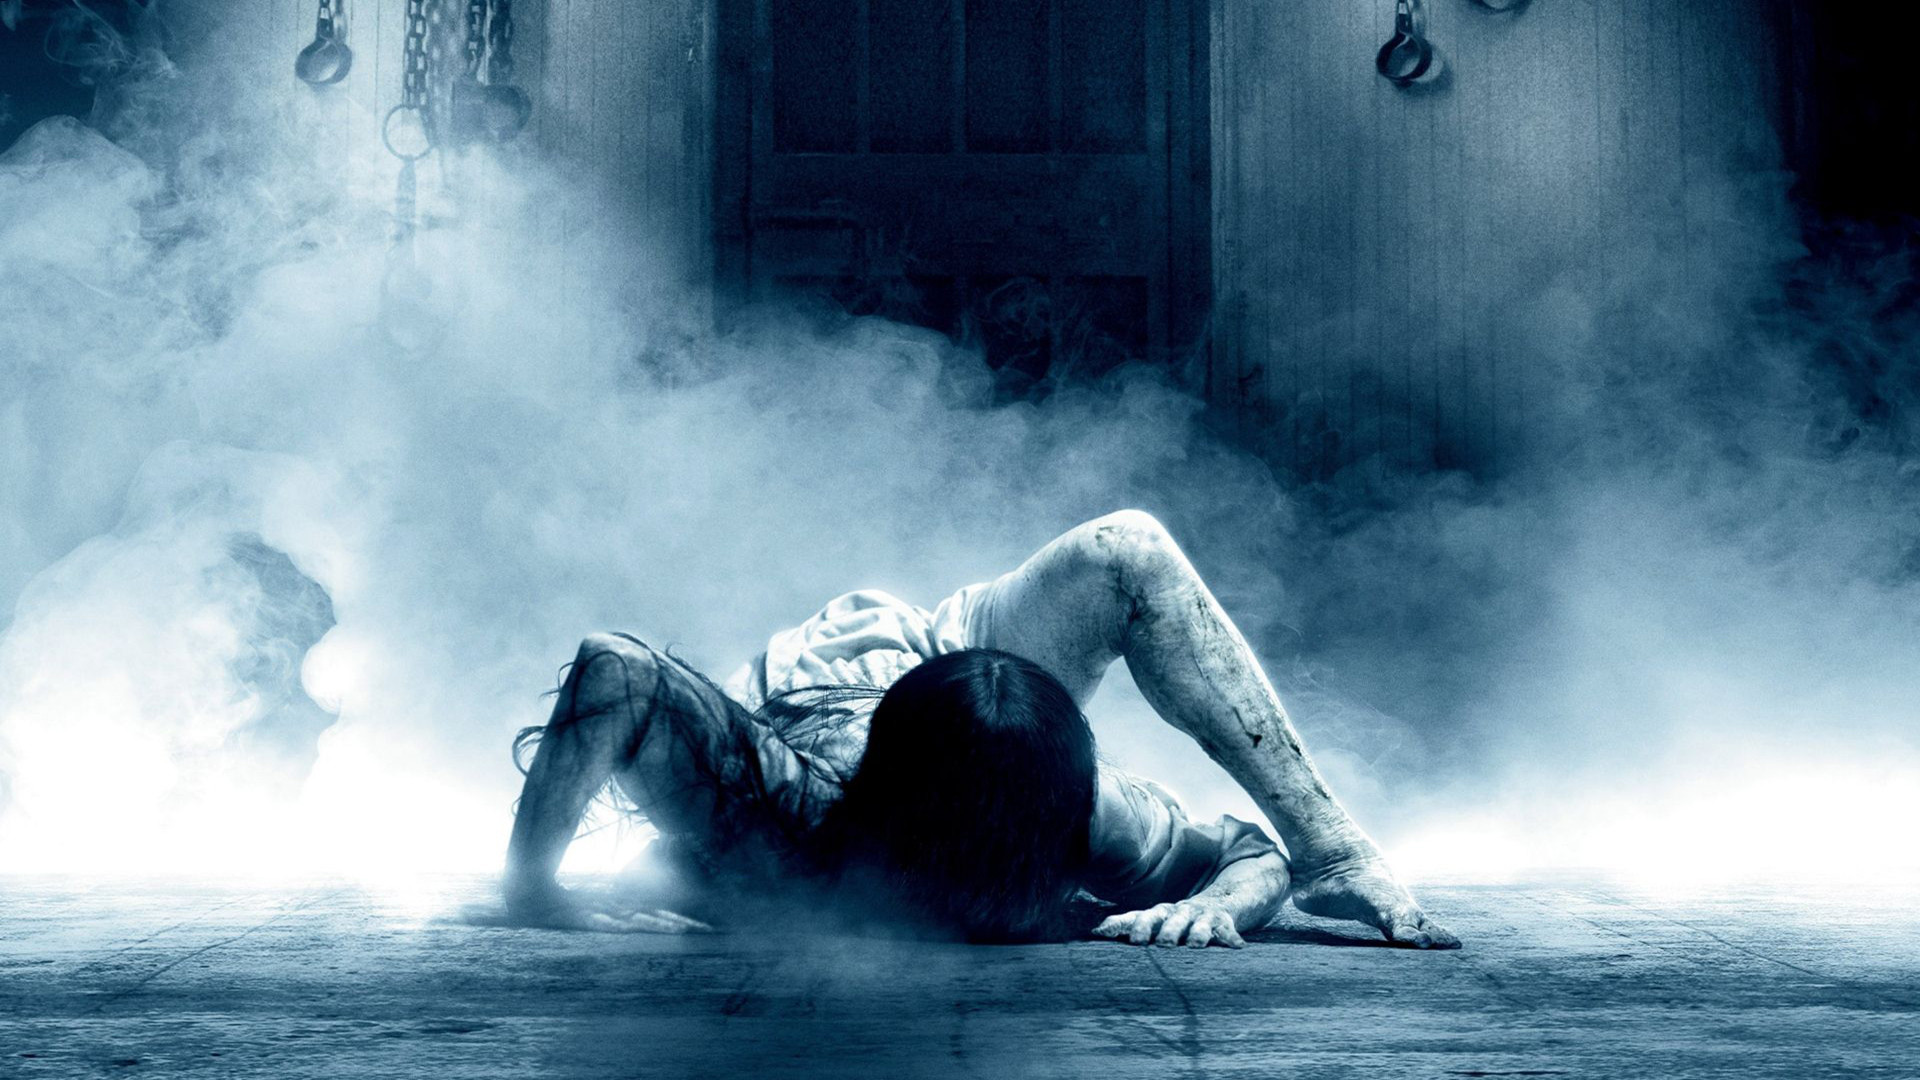 Horror Movie Screensavers and Wallpapers (42+ images)